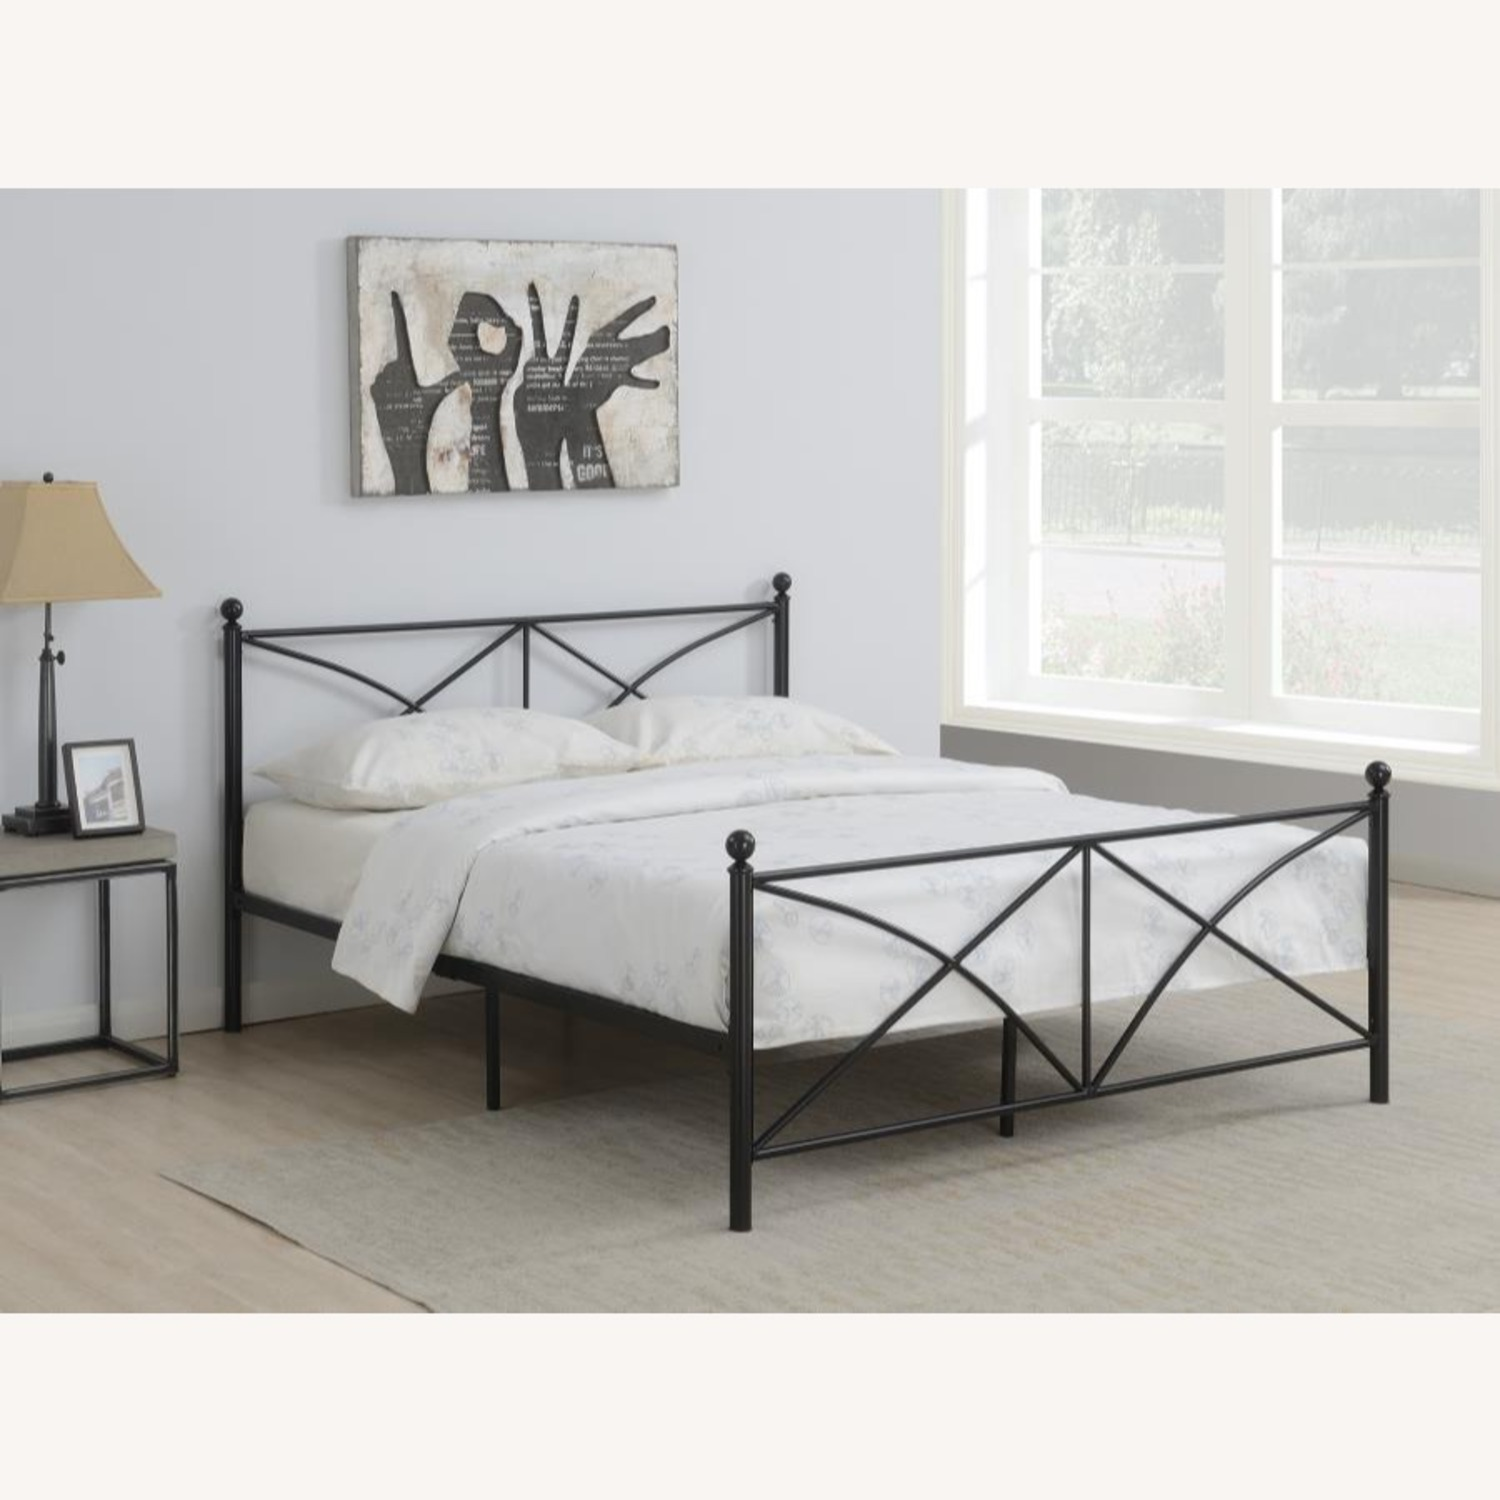 Queen Bed In Matte Black Powder Coated Finish - image-2